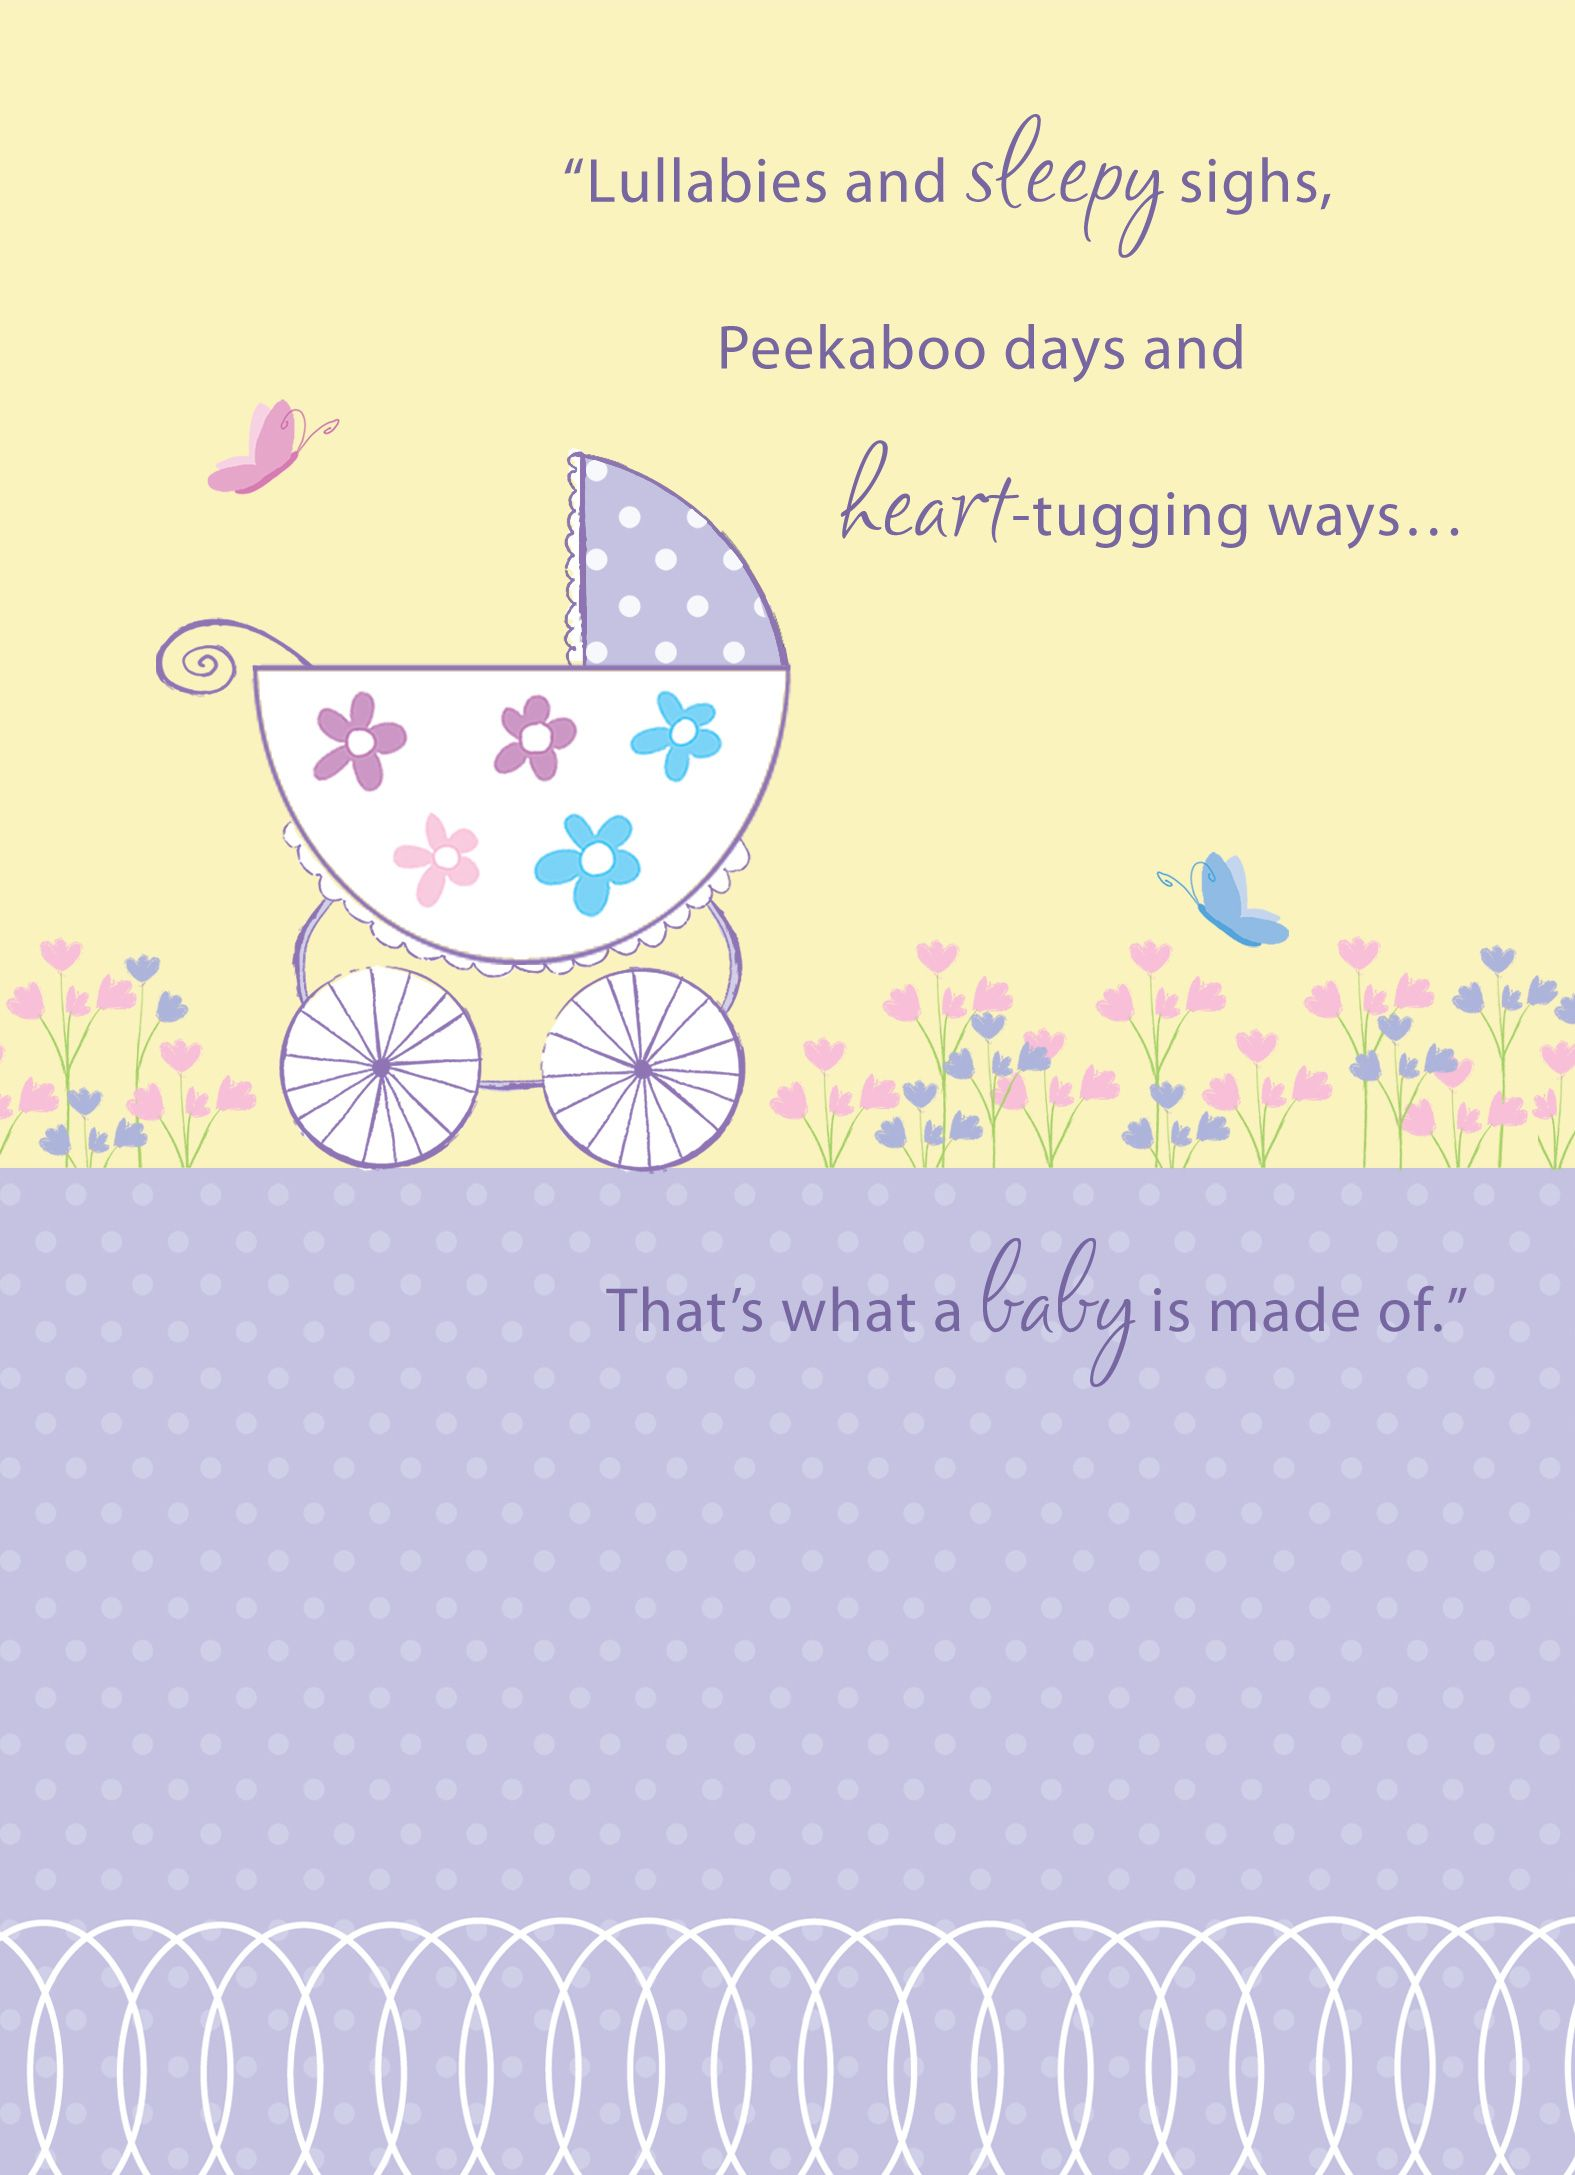 Special deliveryyour new bundle of joy has arrived babyshower special deliveryyour new bundle of joy has arrived babyshower congratulations kristyandbryce Image collections